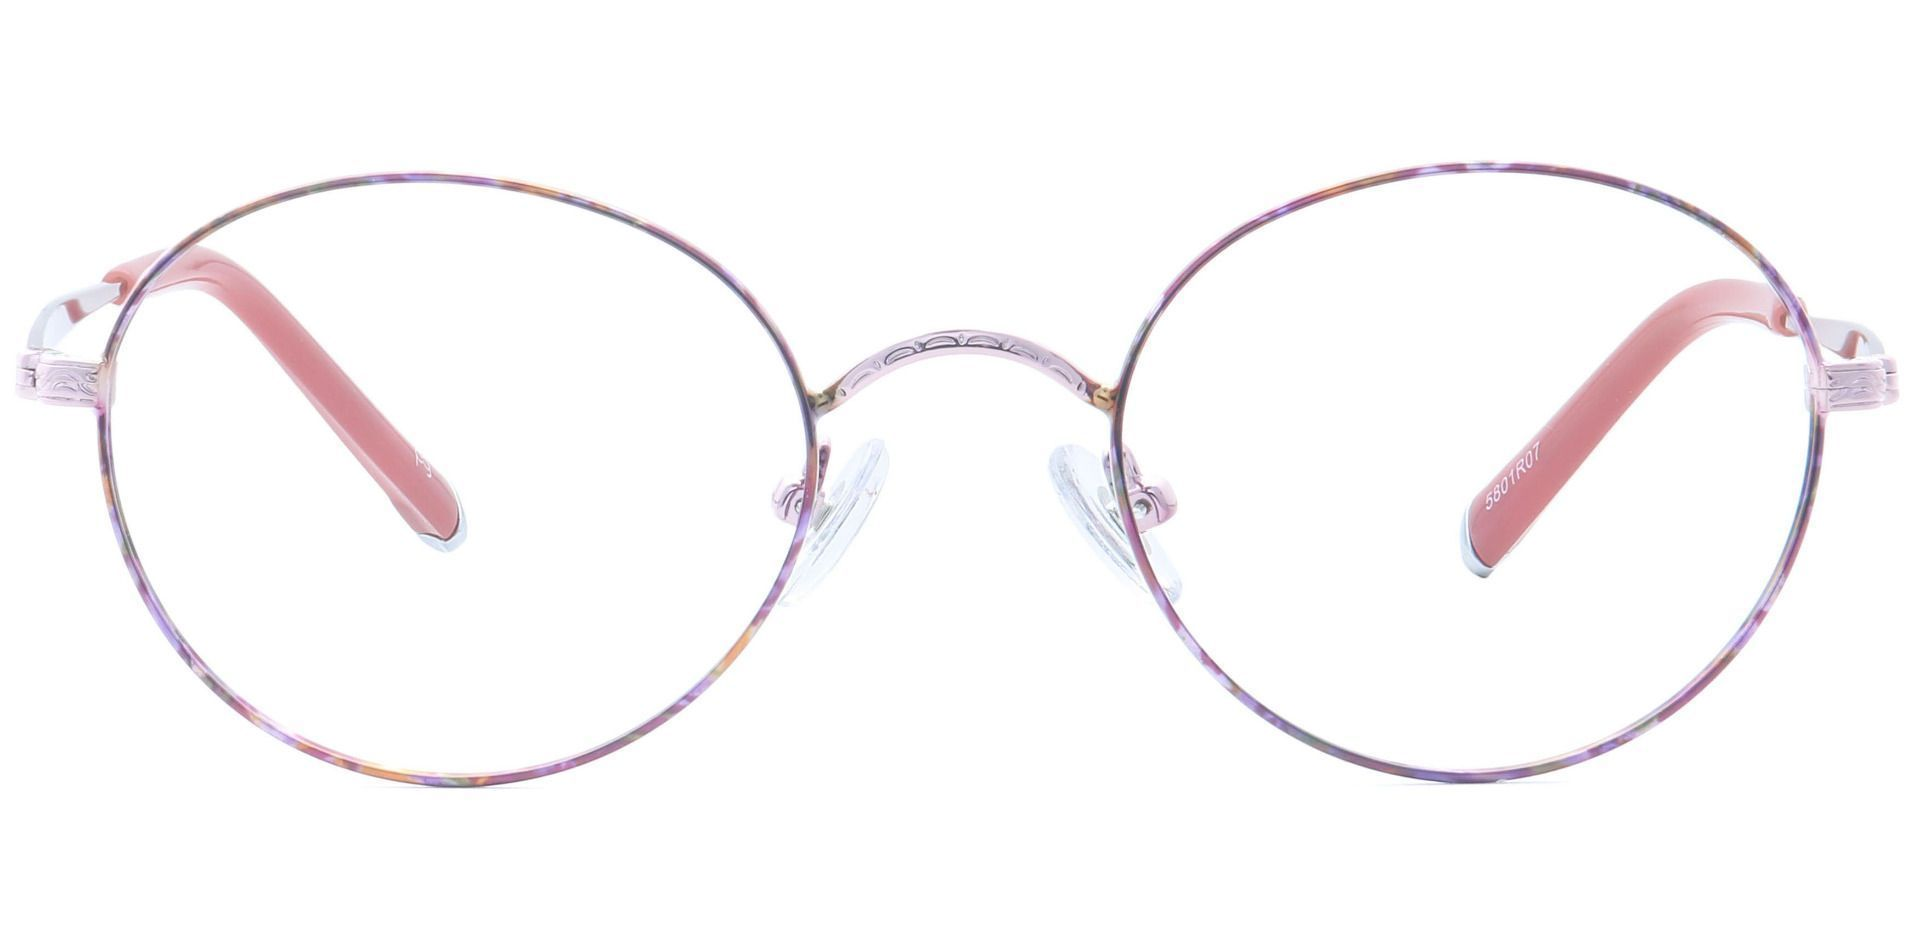 Skylar Round Blue Light Blocking Glasses - Red